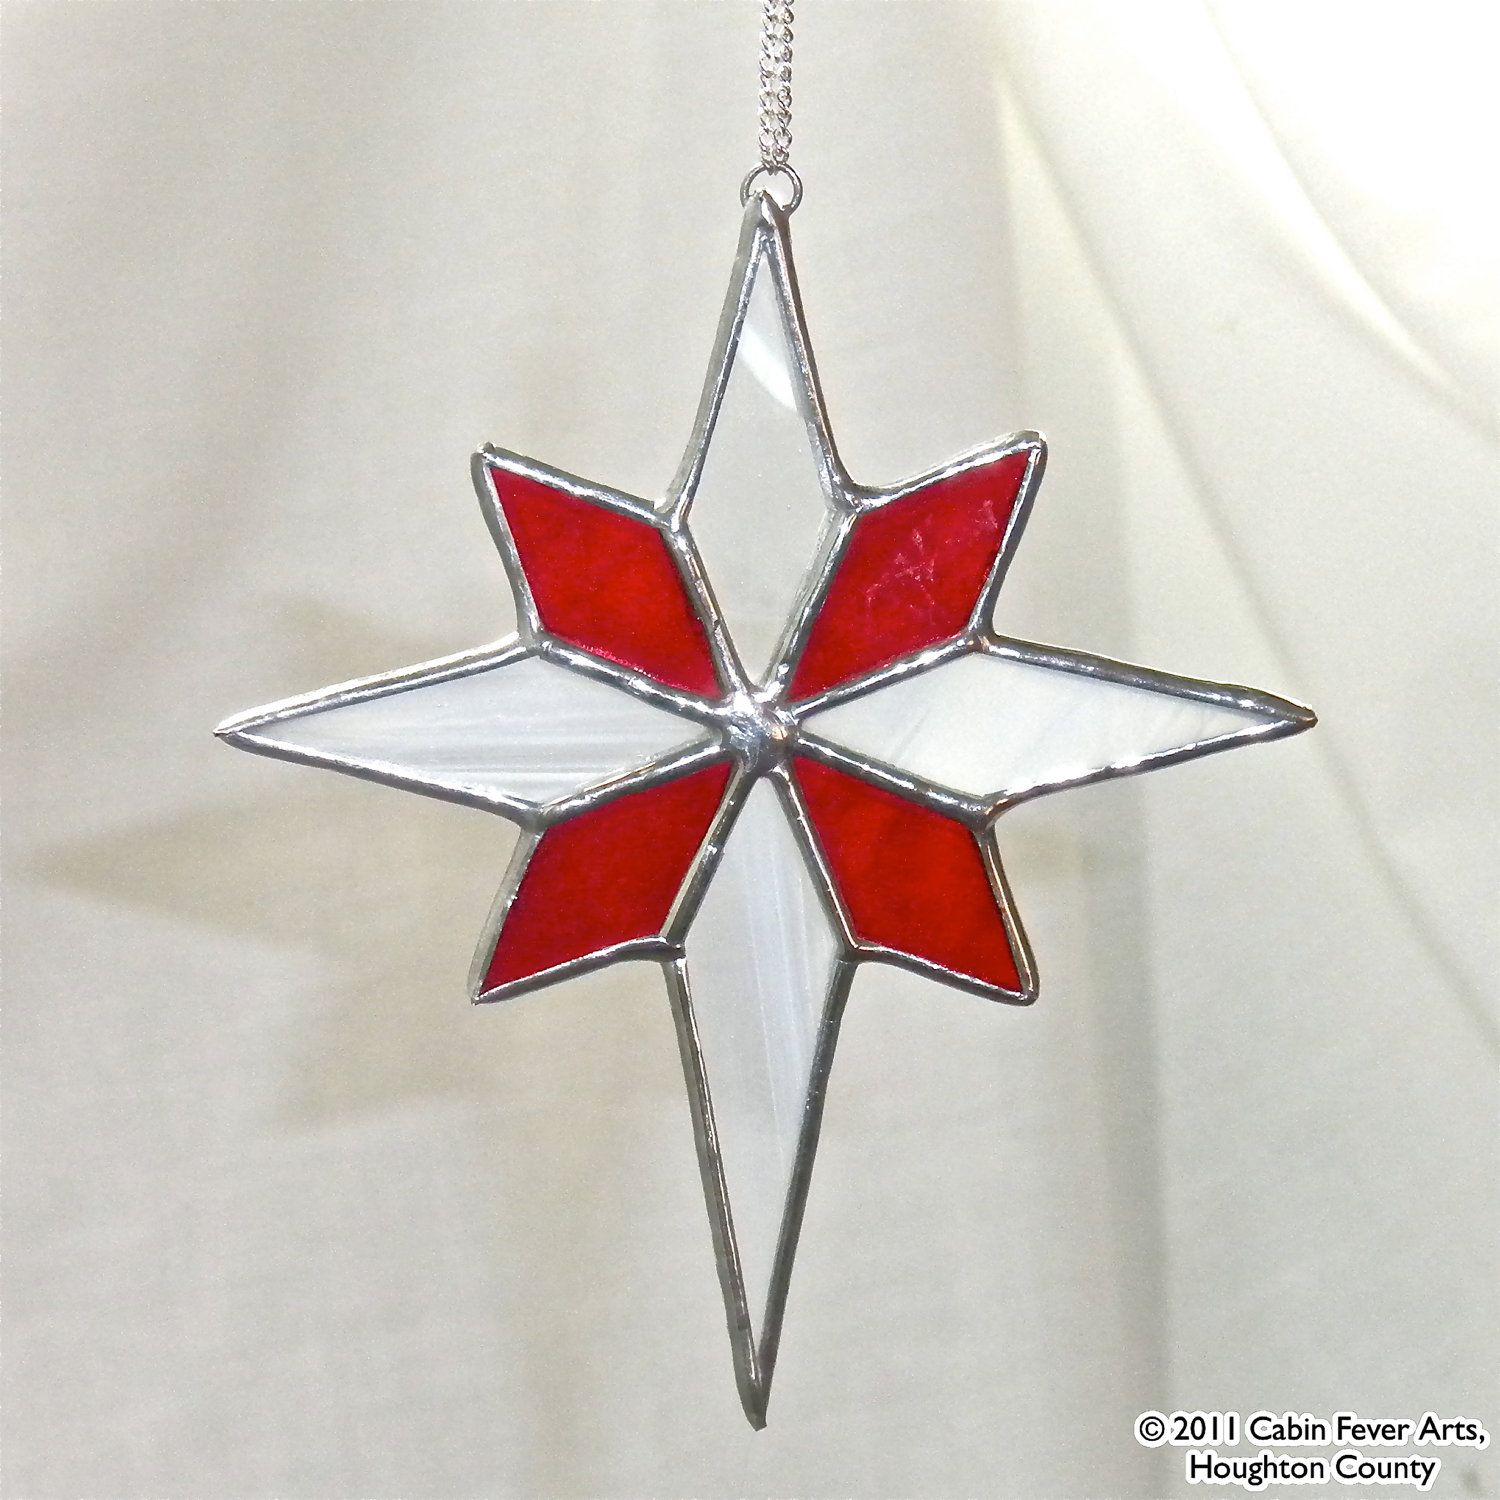 Stained Glass Christmas Ornament Patterns.Red Star In Stained Glass Christmas Tree Ornament Gift